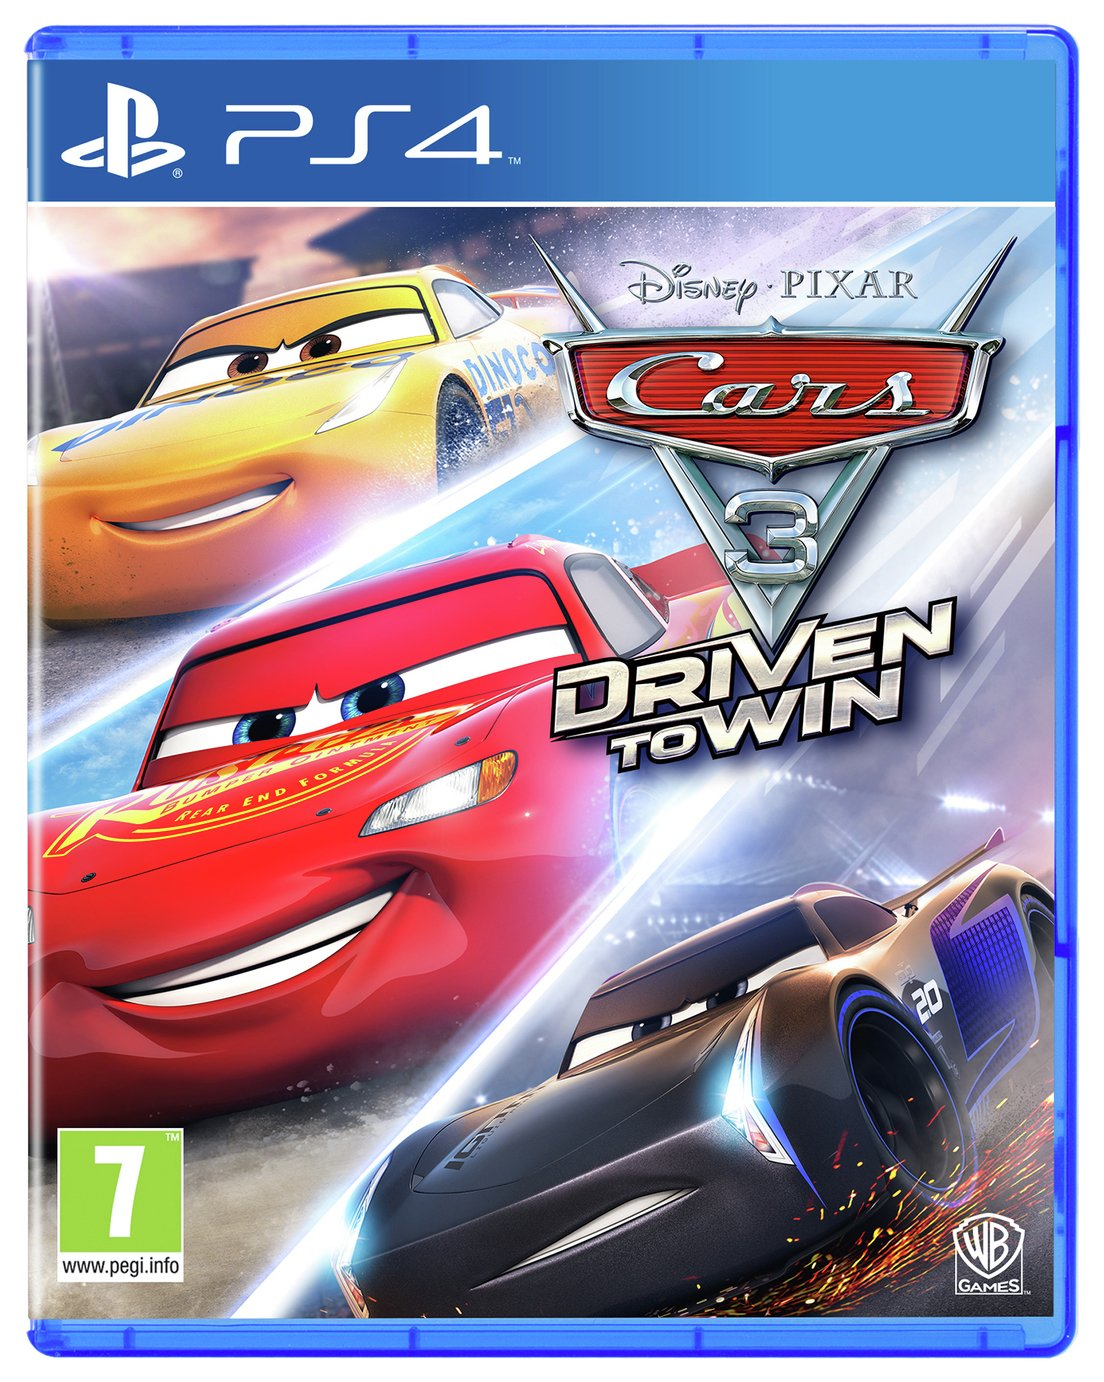 Cars 3: Driven to Win PS4 Game from Cars 3